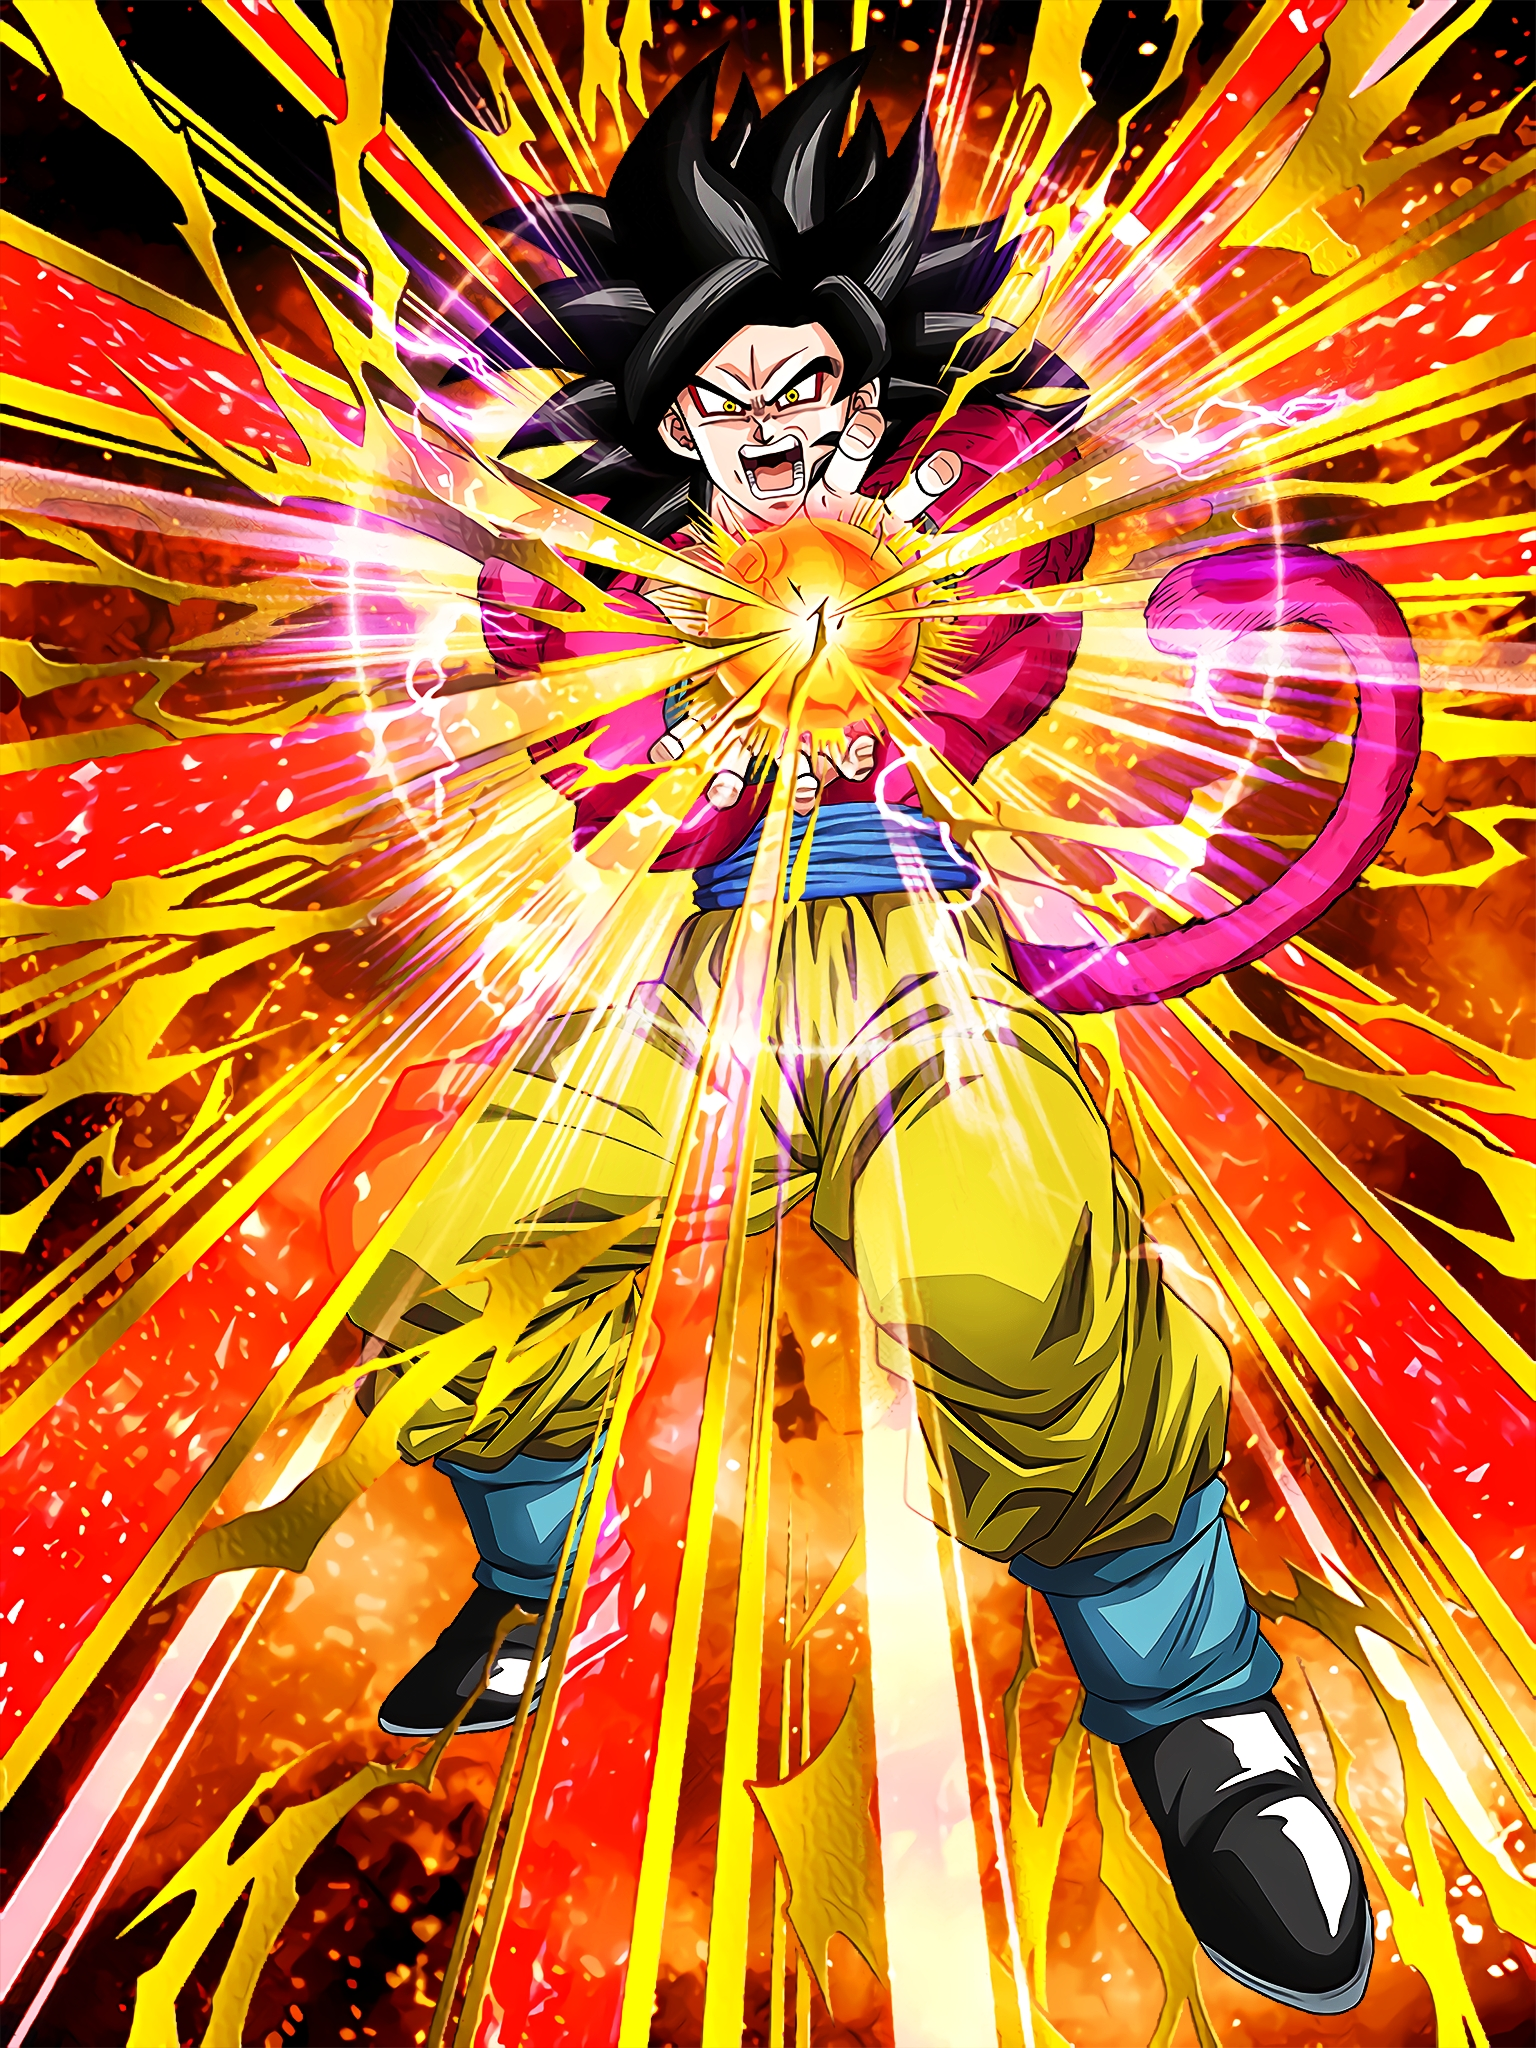 Ultimate Super Saiyan Super Saiyan 4 Goku Art (Dragon Ball Z Dokkan Battle) .jpg